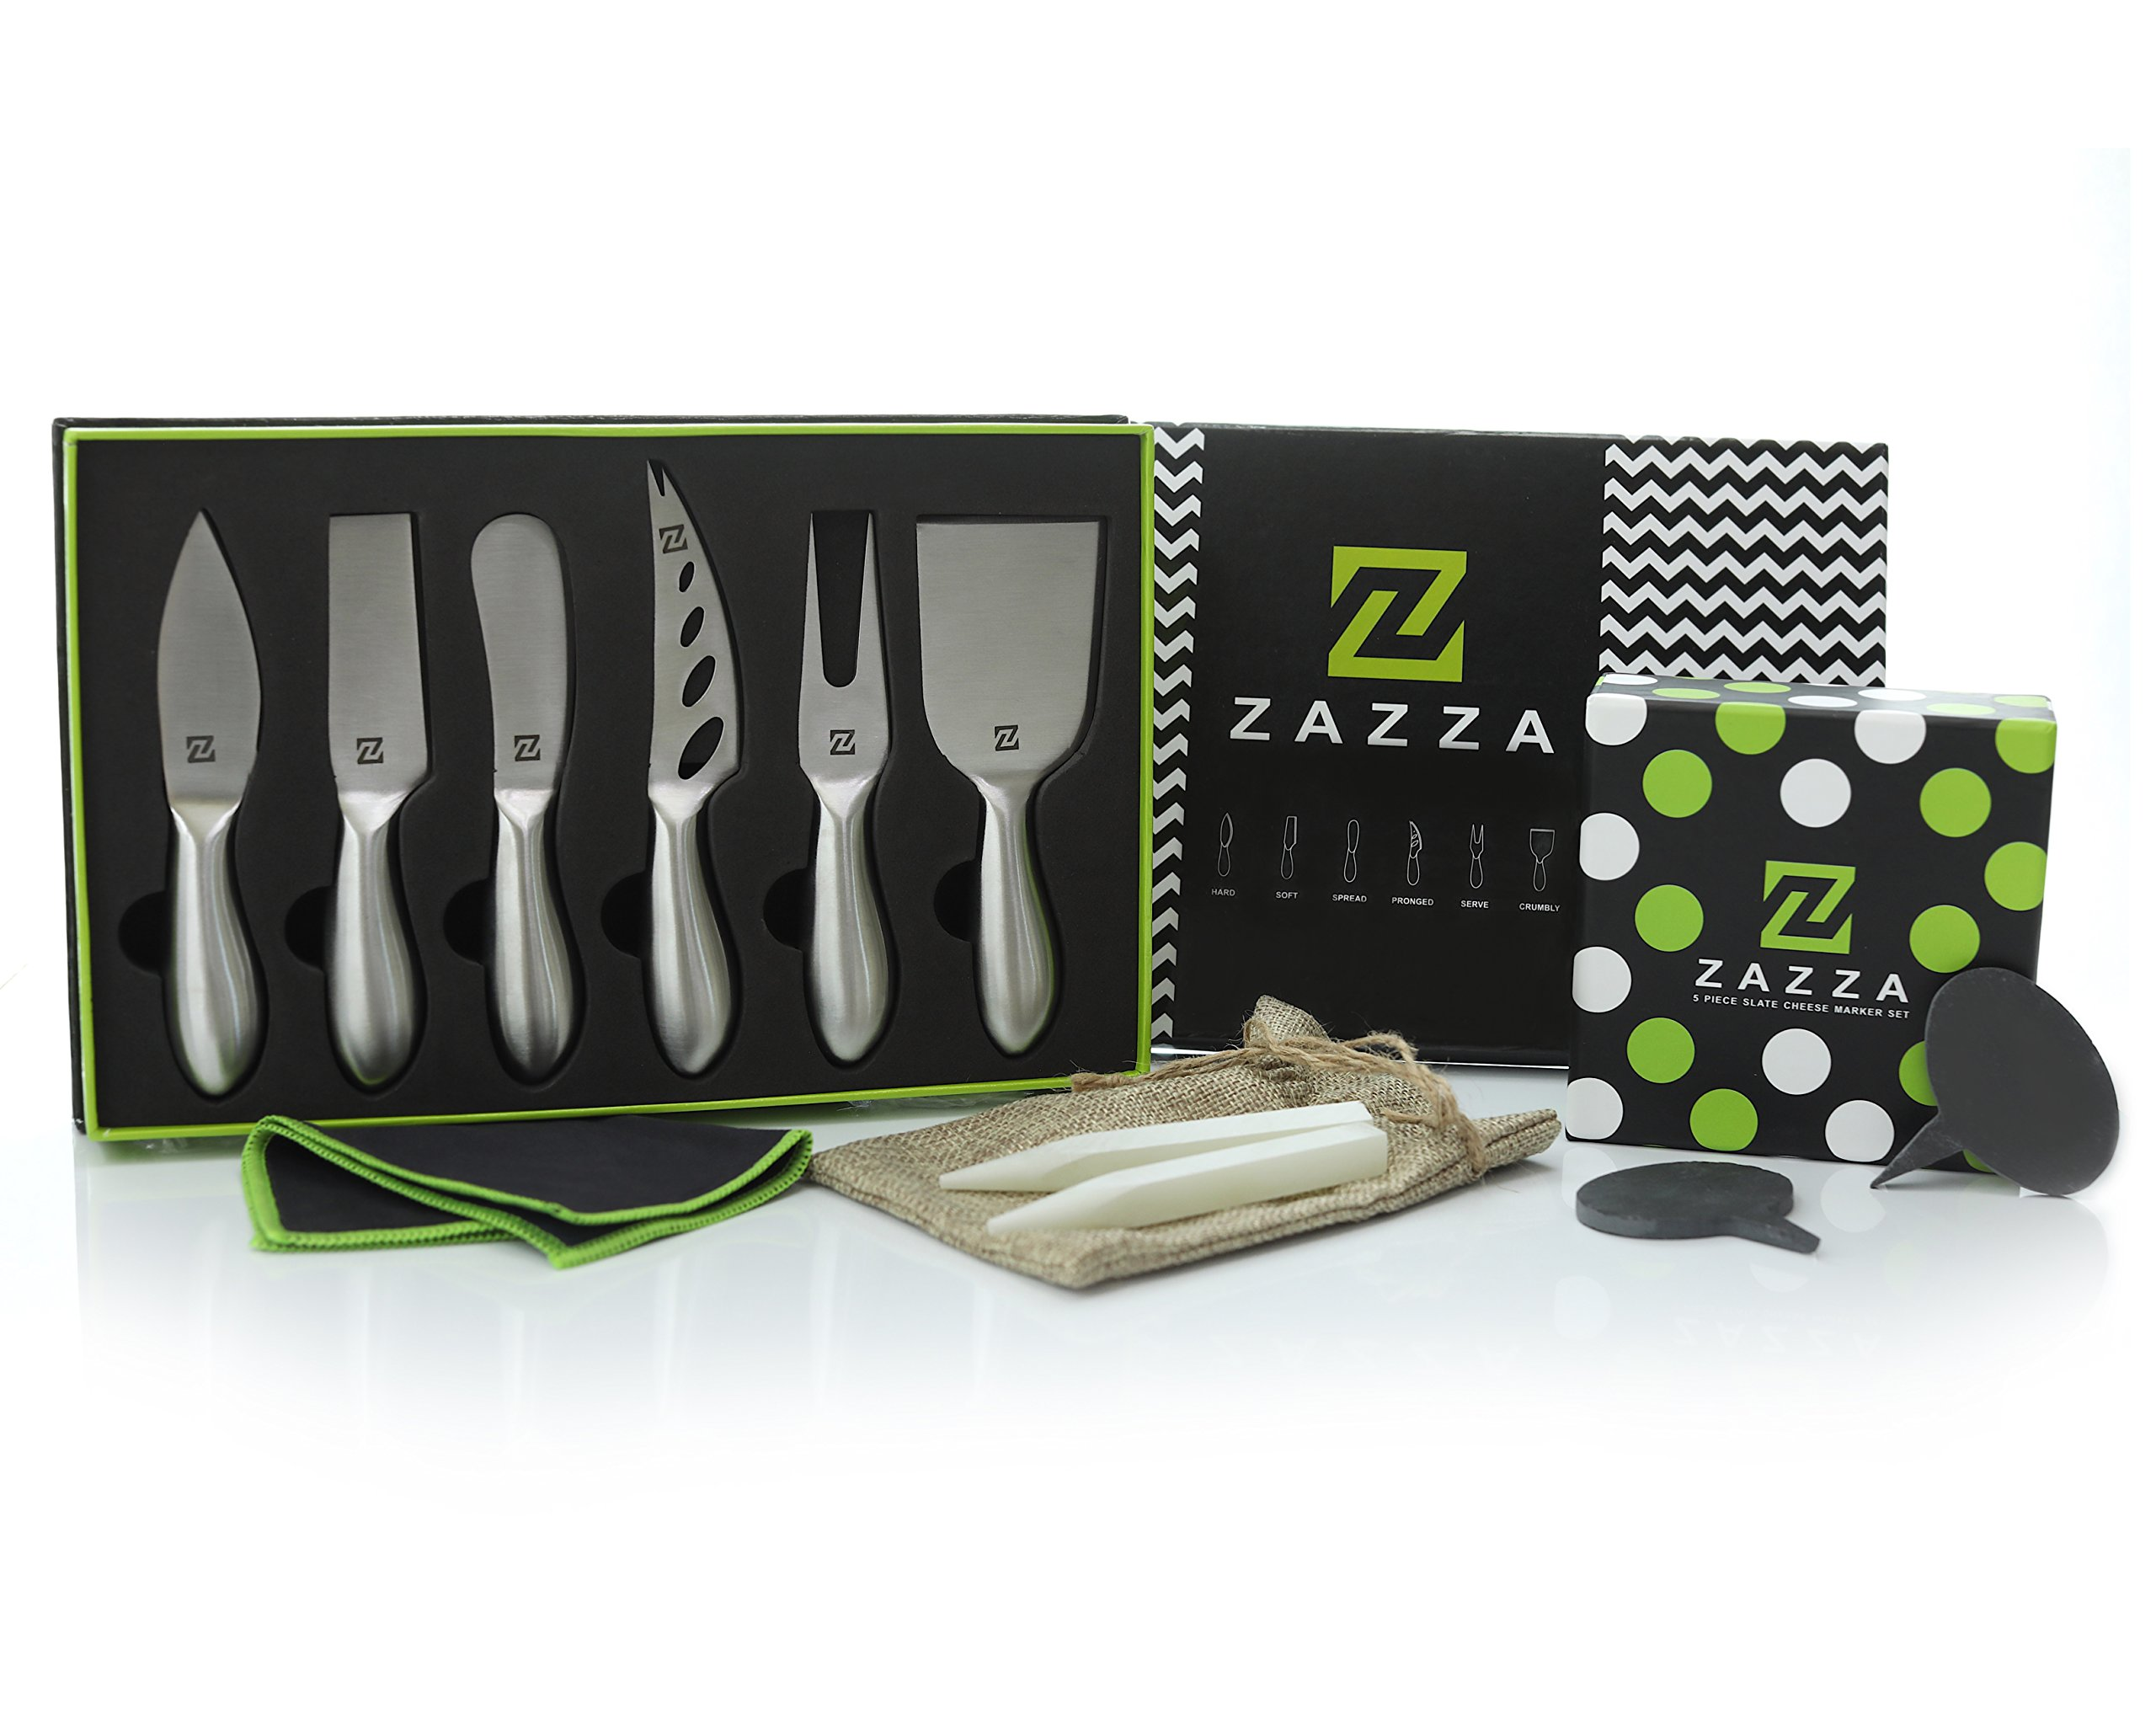 Zazza Premium 6-Piece Cheese Knife Set PLUS 5 Cheese Markers Set 2 Soapstone Chalks with Gift Box Perfect for Charcuterie Boards Wine and Cheese Parties by Z ZAZZA ACCESSORIES FOR SOPHISTICATED CHEFS